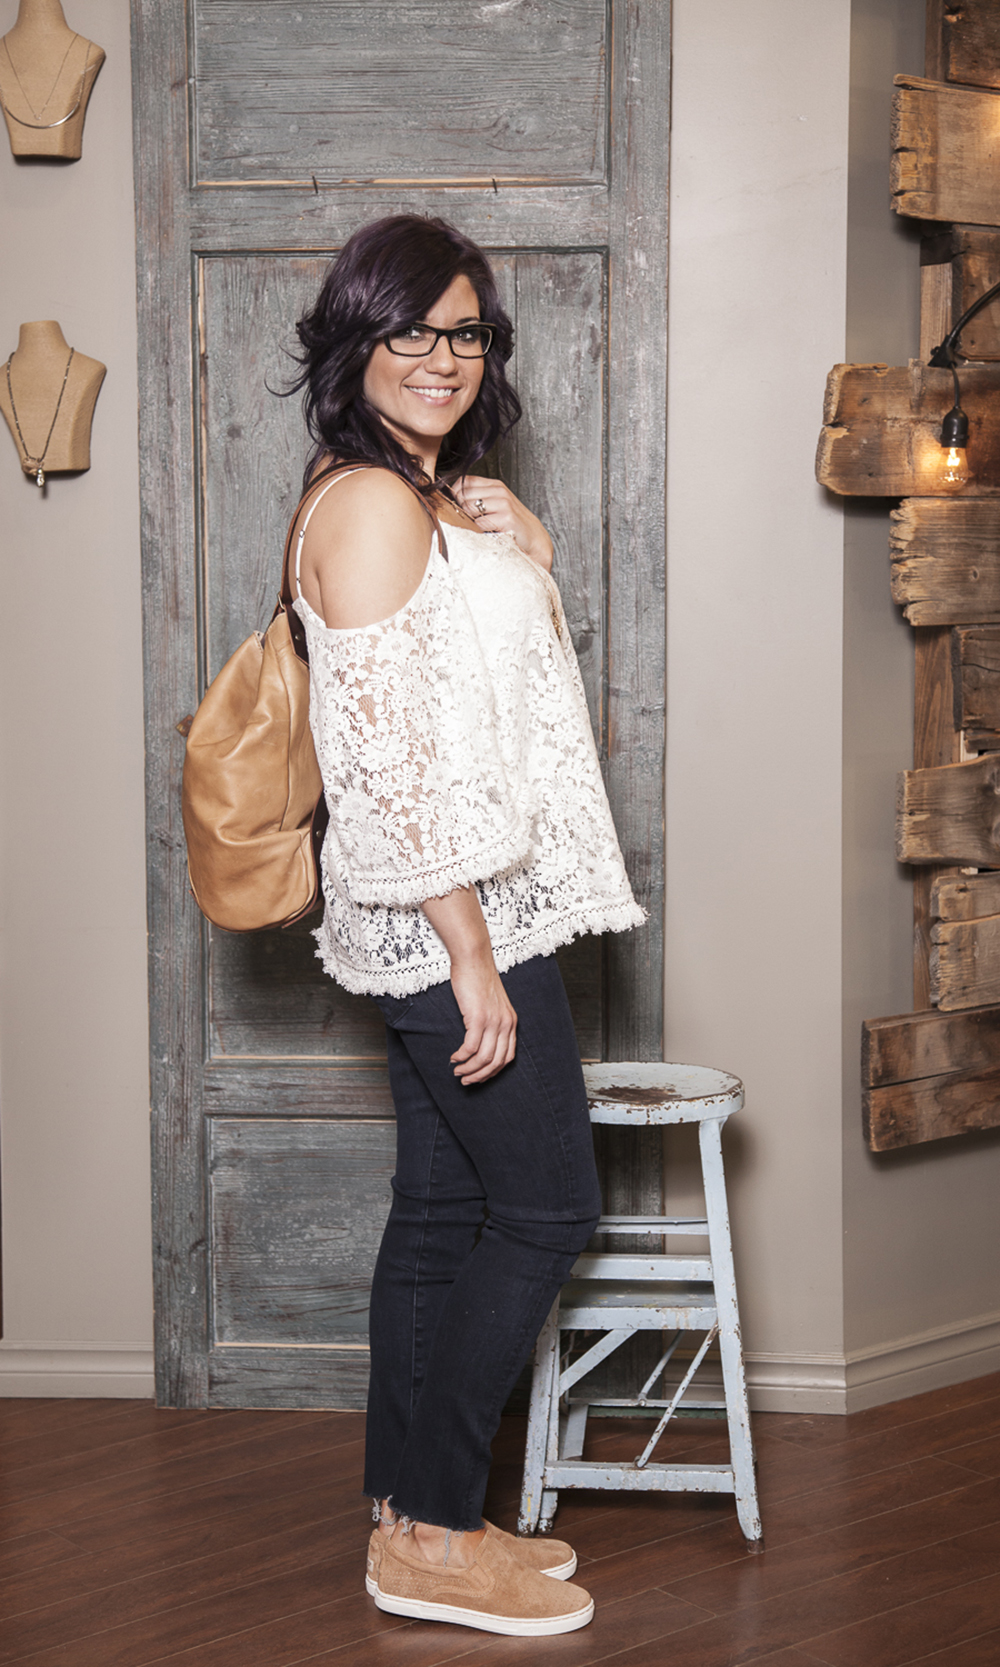 Bella-maas-boutique-sherwood-park-st-albert-spring-fashion-boho-tops-bailey-44-tusk-top-ugg-pure-shoes-mother-jeans-frayed